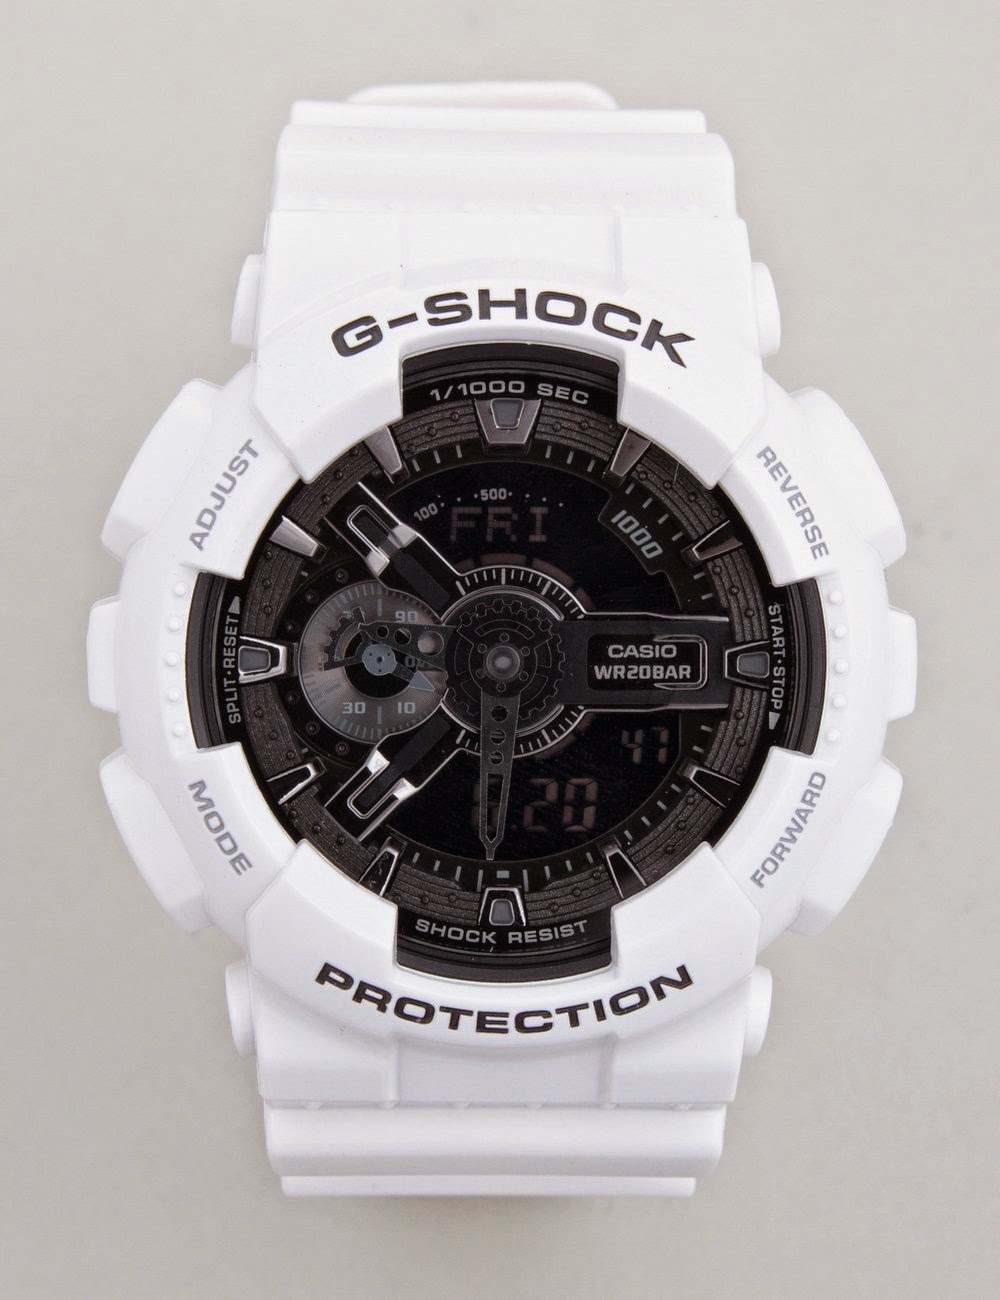 G-Shock GA-110GW-7AER Watch - White